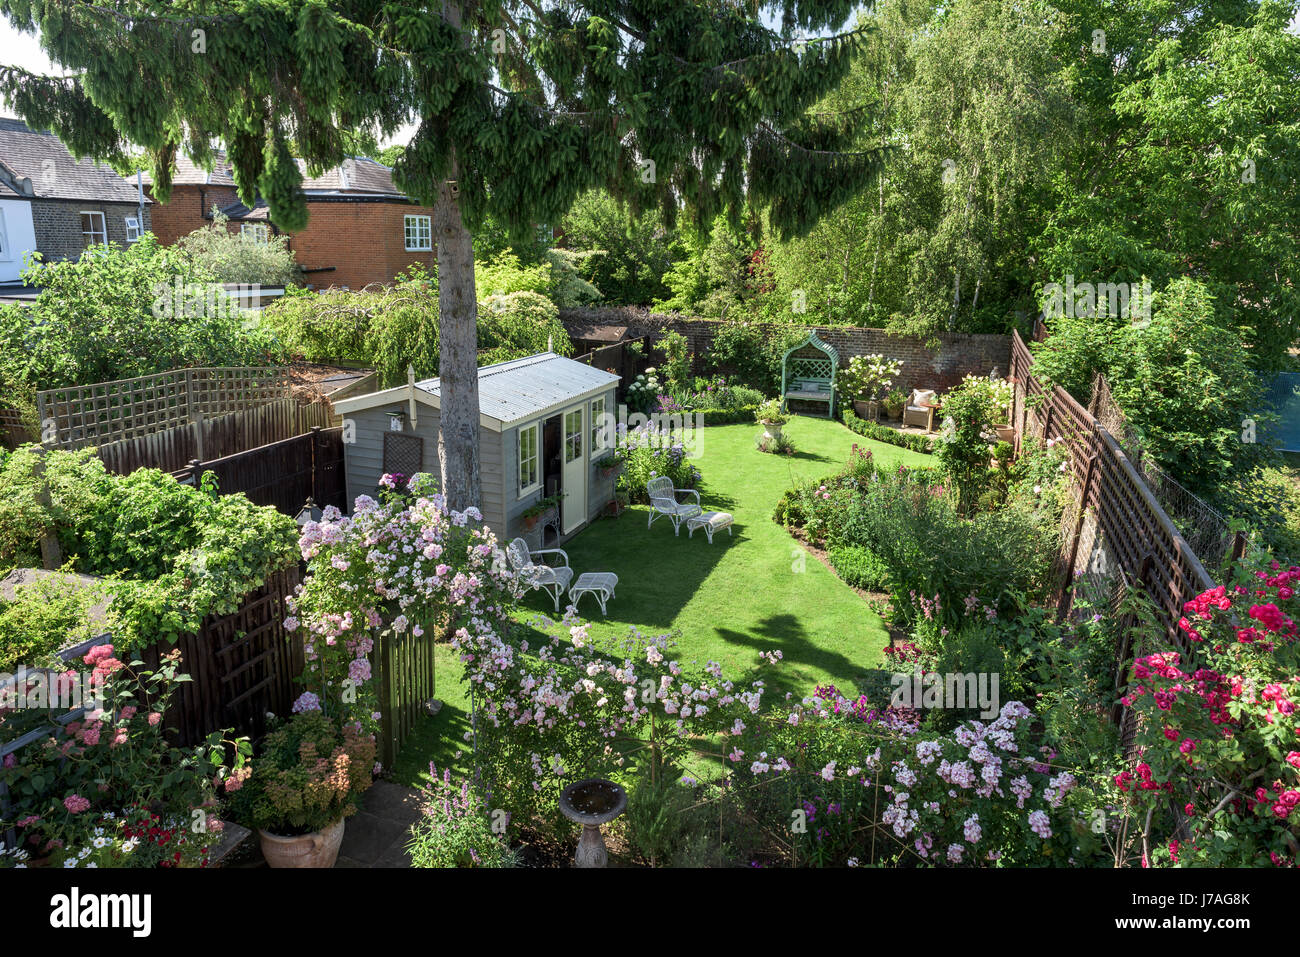 english fence fenced stockfotos english fence fenced bilder alamy. Black Bedroom Furniture Sets. Home Design Ideas